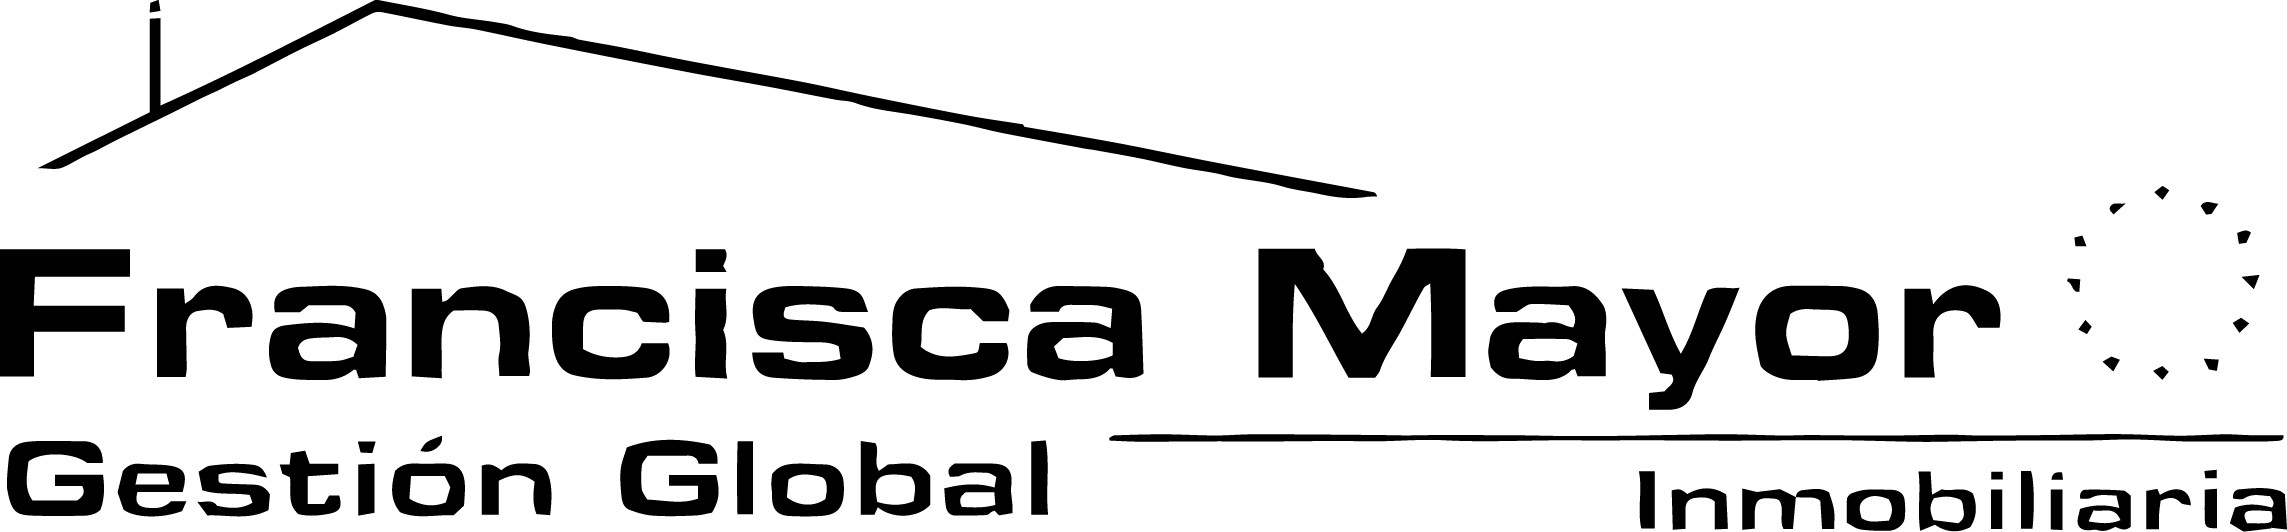 logo francisca mayor